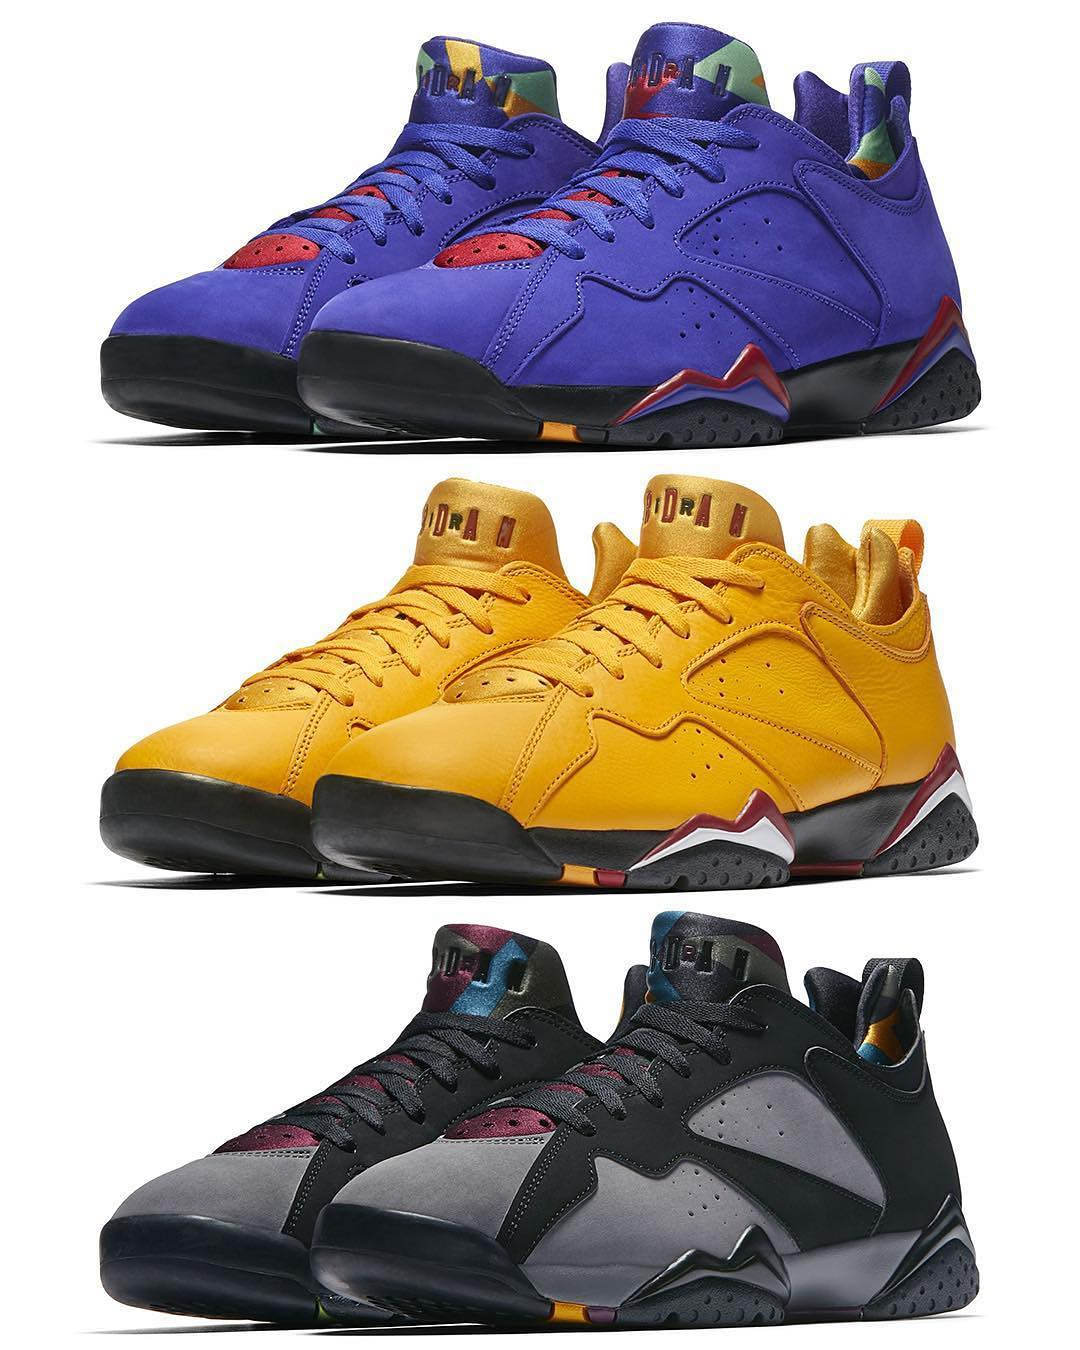 newest 811fb dcd16 Three Air Jordan 7 Low NRG Colorways Rumored To Release In ...